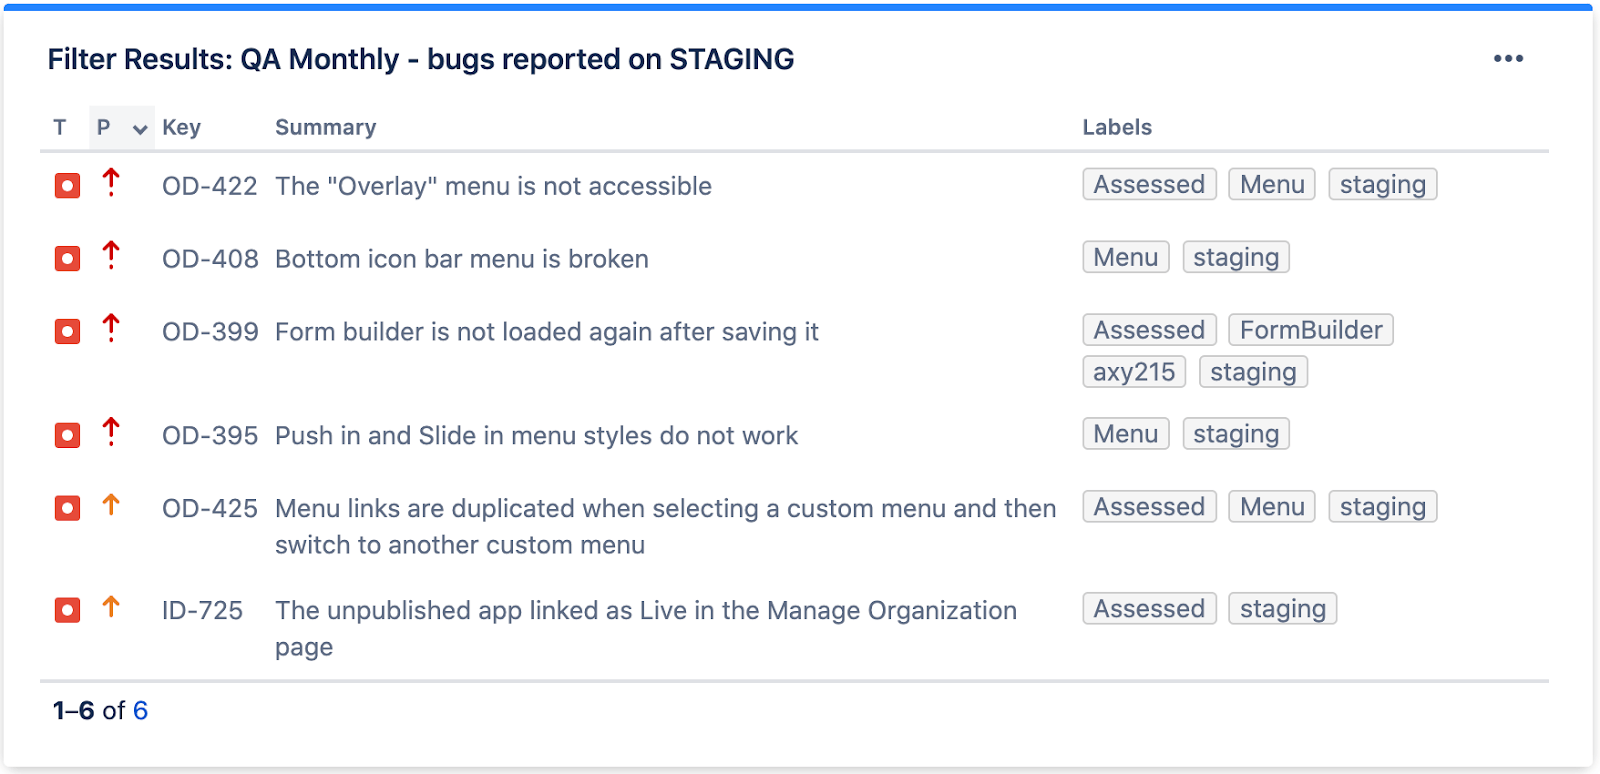 How to control the quality of your software product. QA: Bugs reported on staging